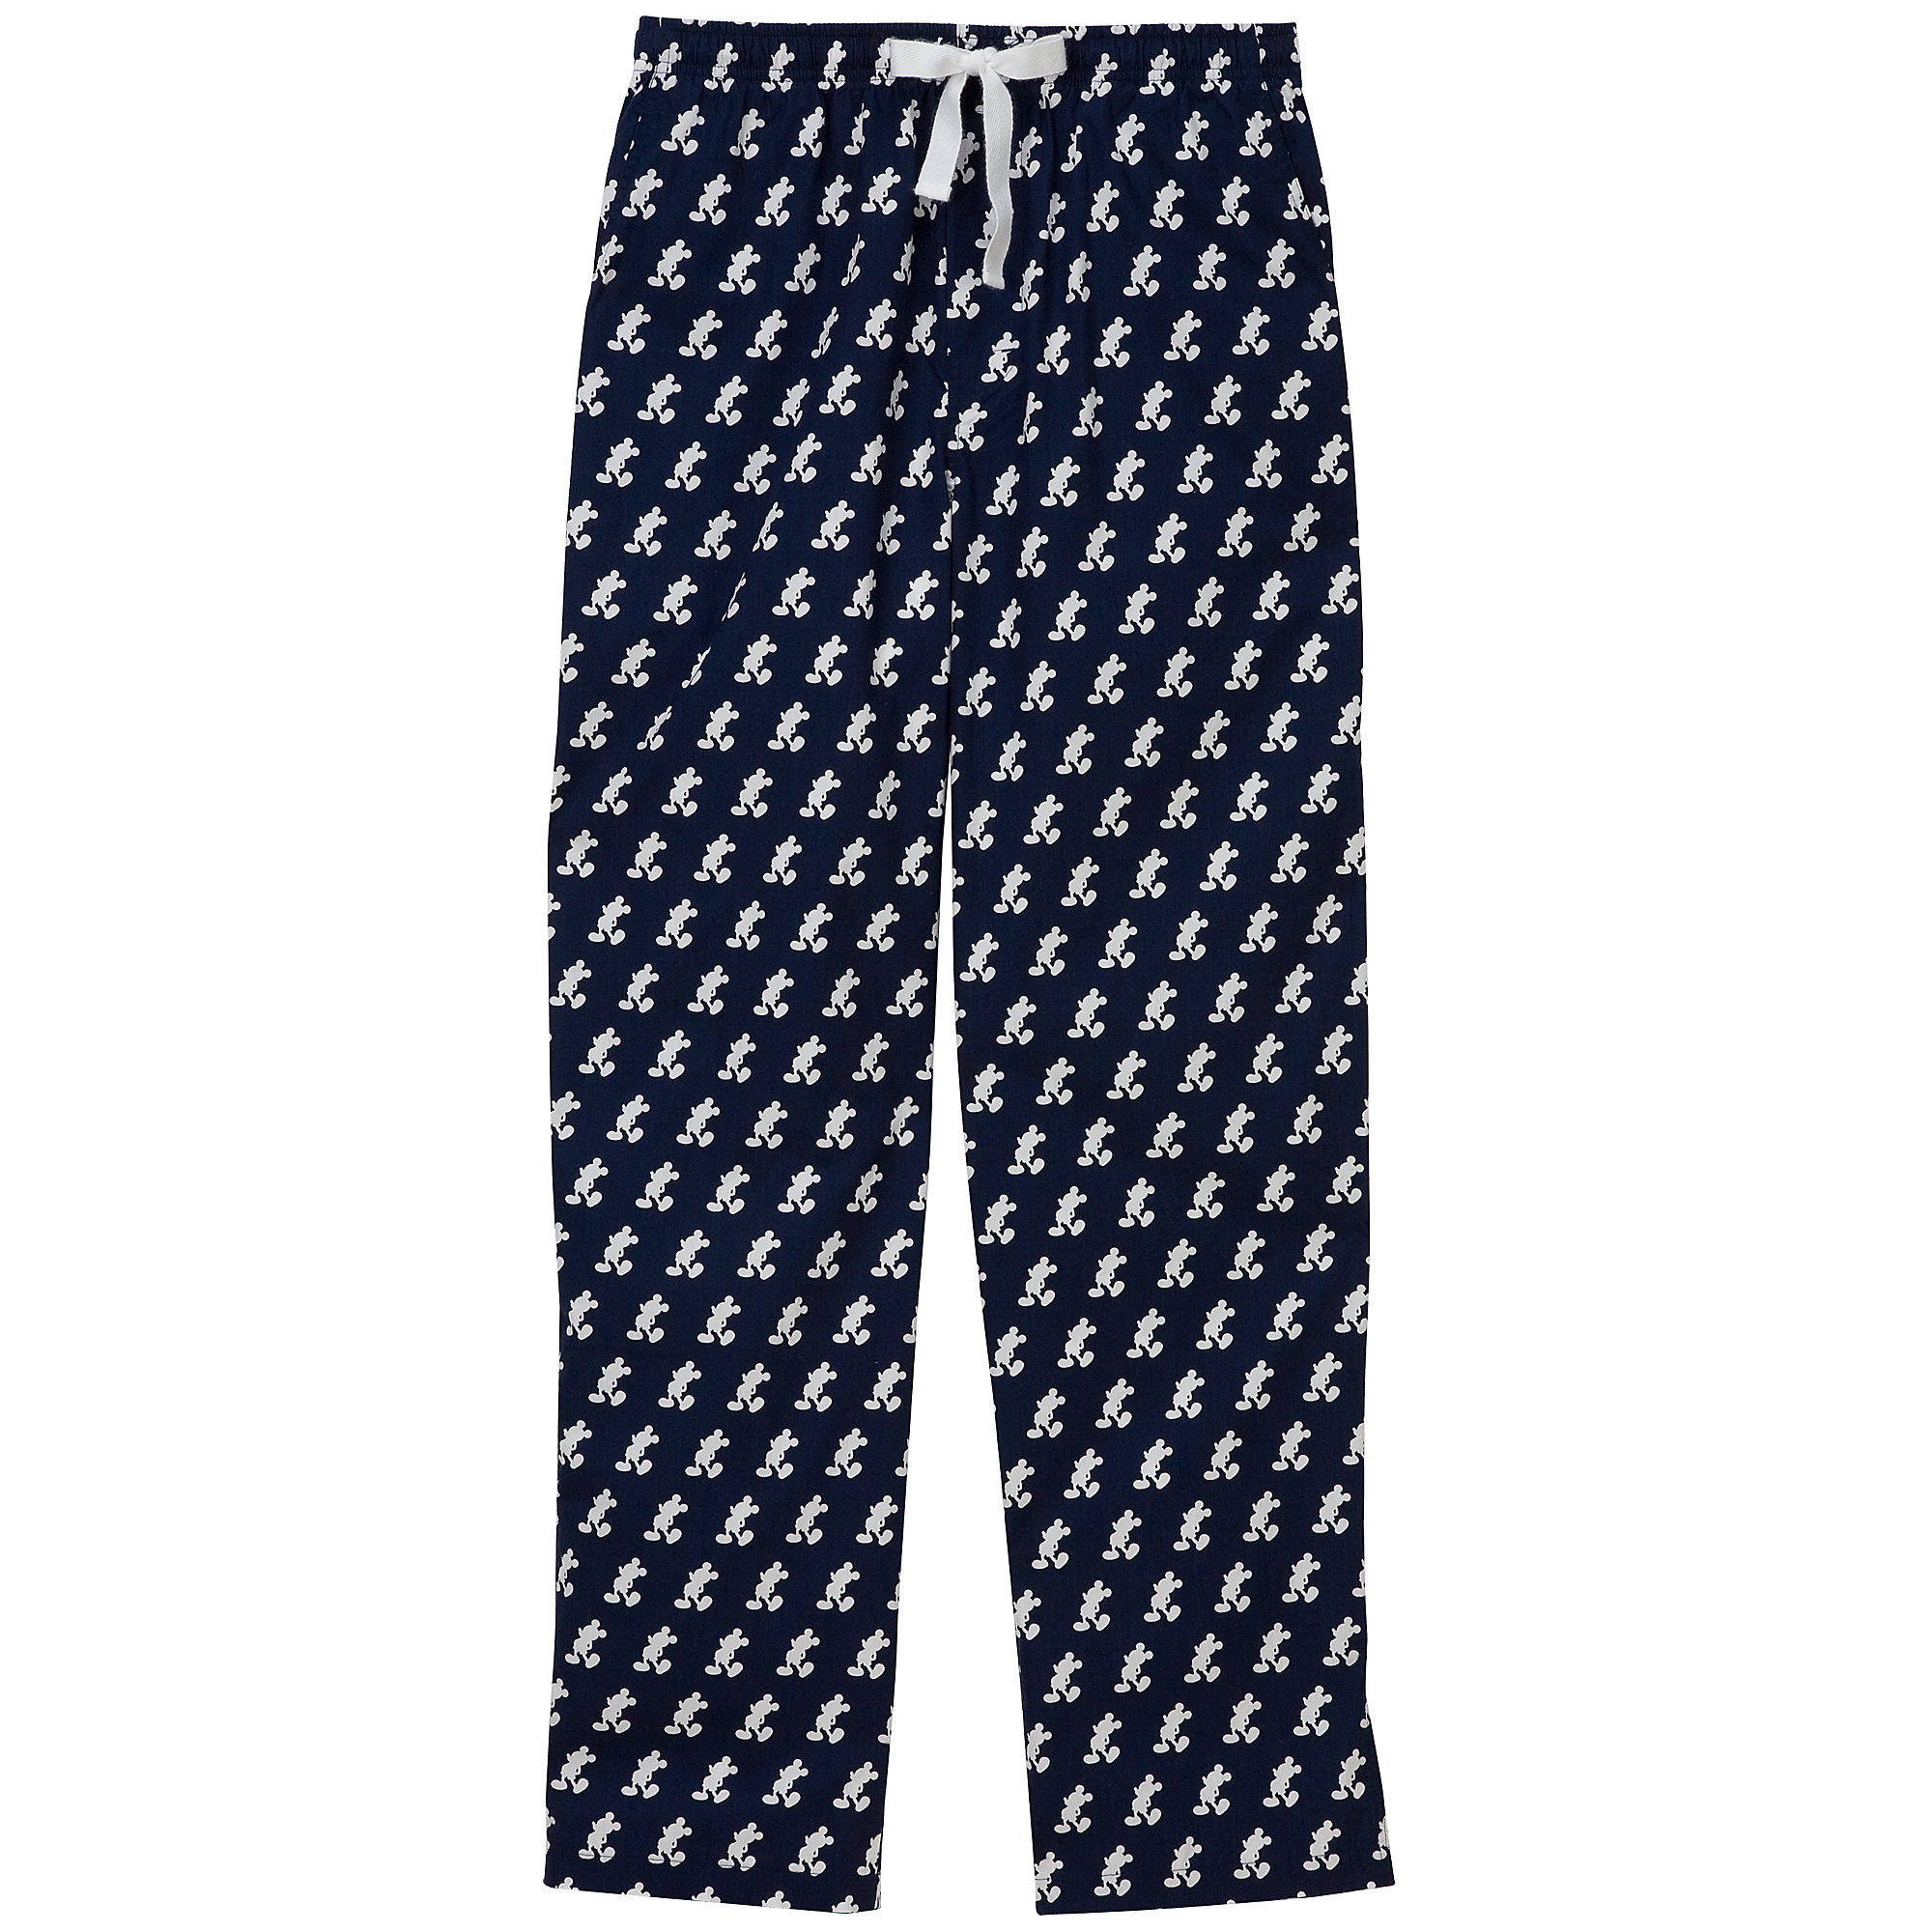 2000x2000 Silhouette Mickey Mouse Lounge Pants For Men Shopdisney